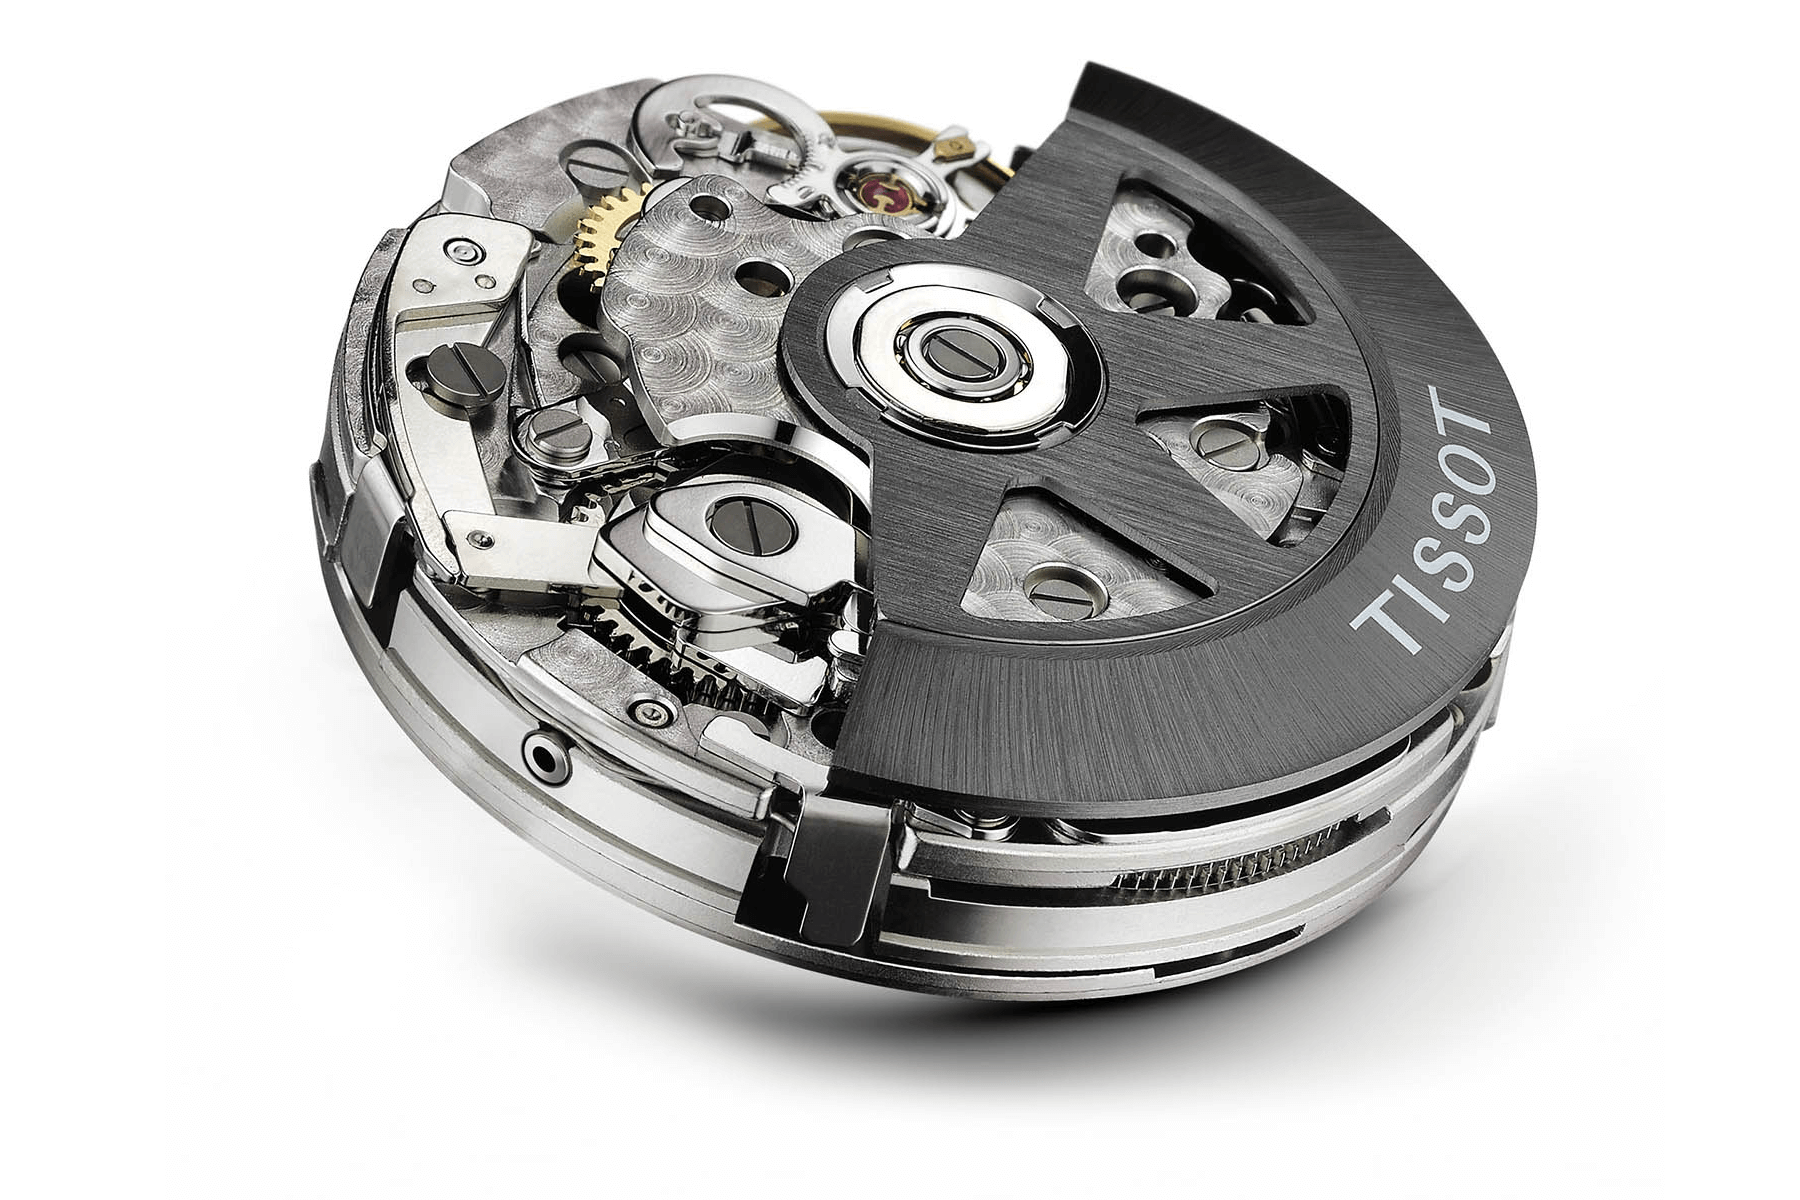 đồng hồ Tissot Alpine On Board Automatic Chronograph A110S